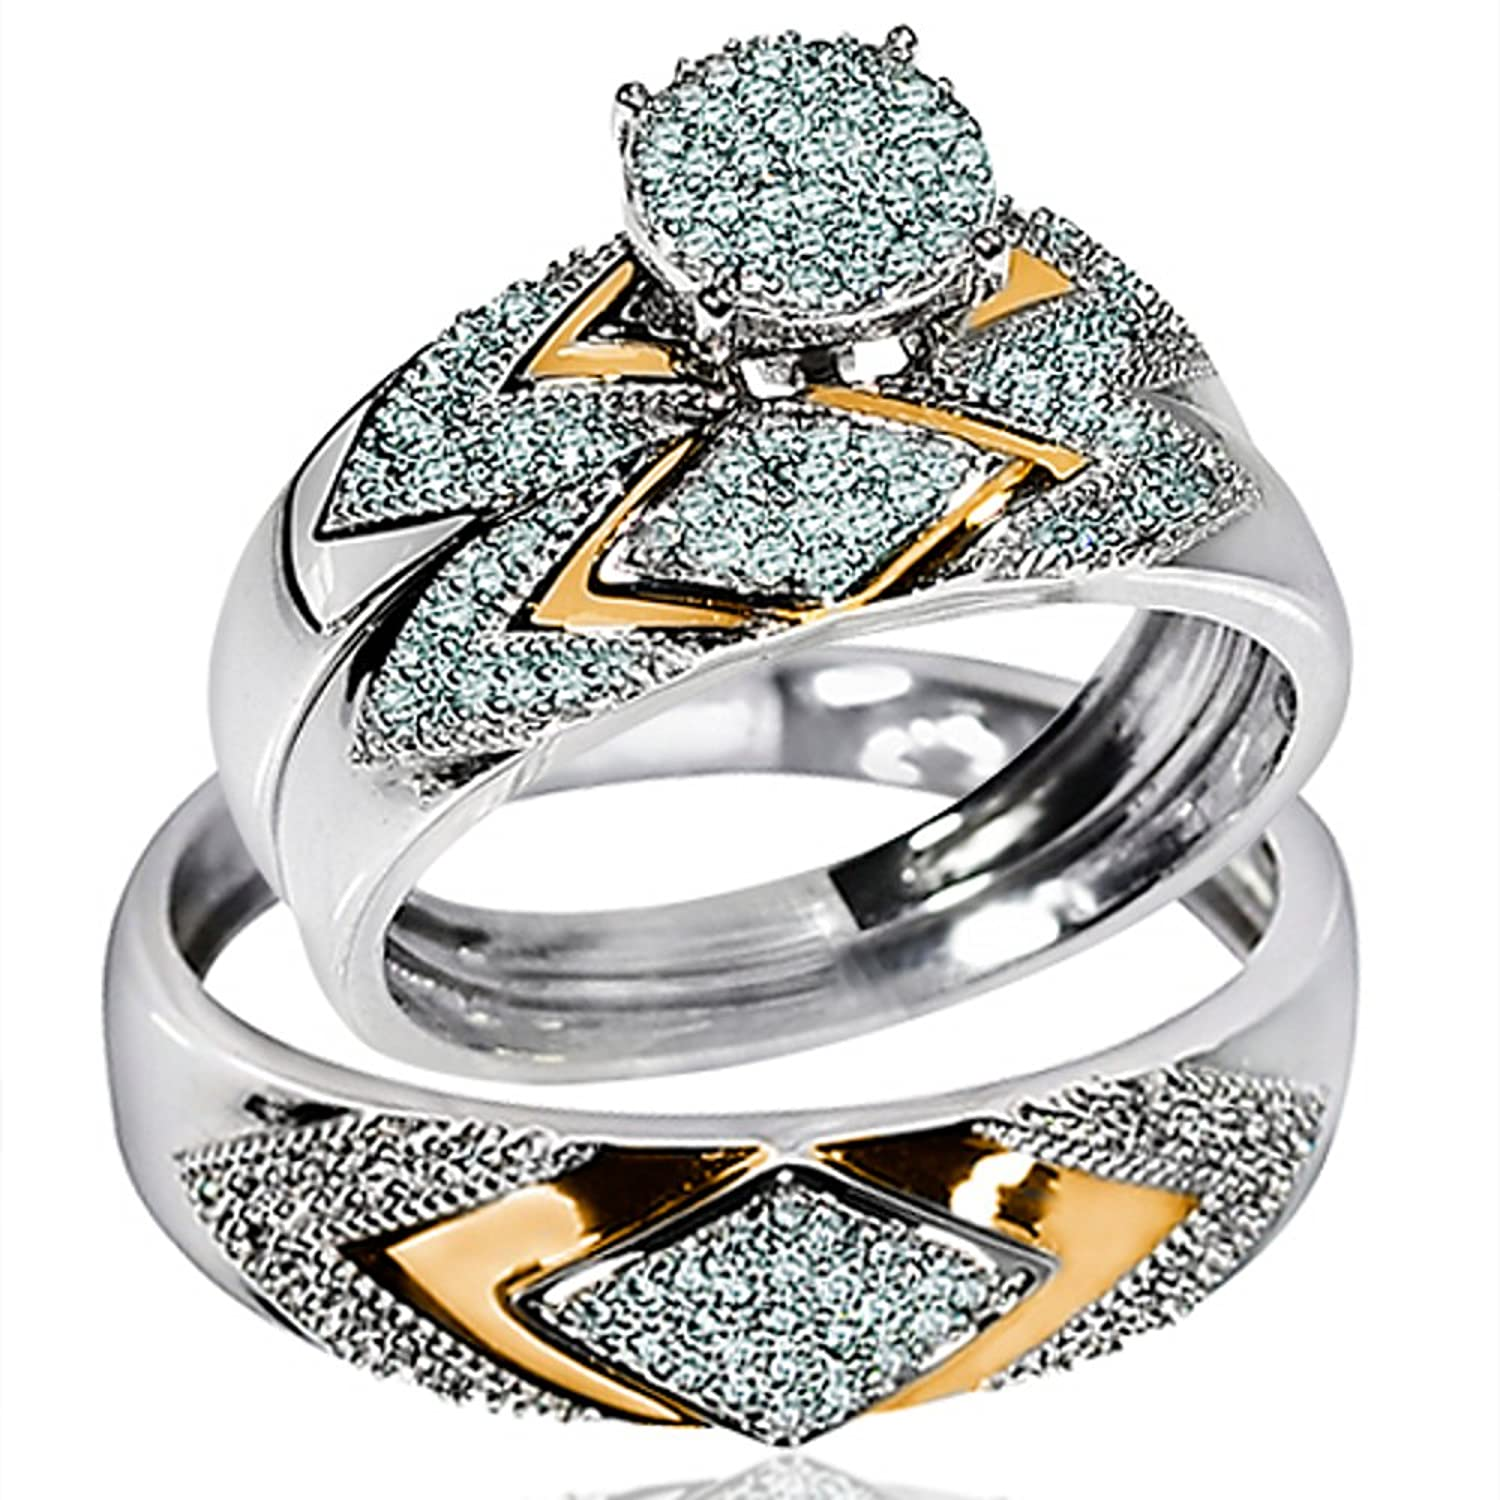 his her wedding rings set trio men women 14k white